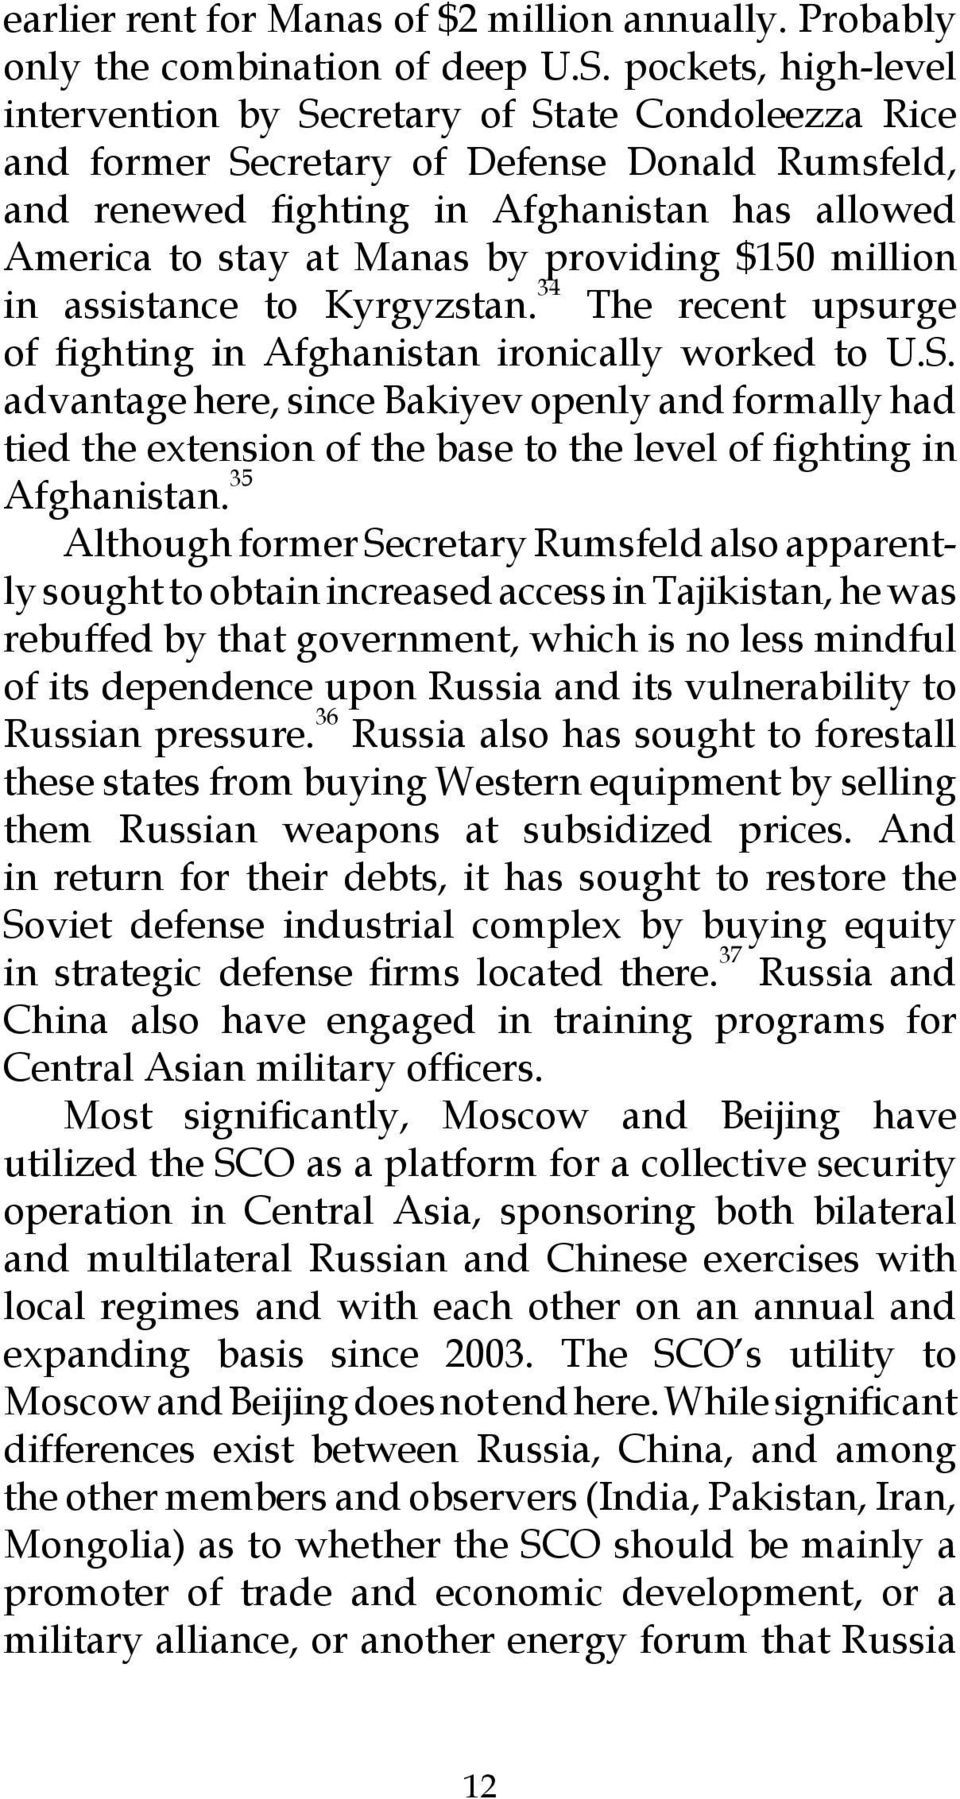 providing $150 million in assistance to Kyrgyzstan. 34 The recent upsurge of fighting in Afghanistan ironically worked to U.S.